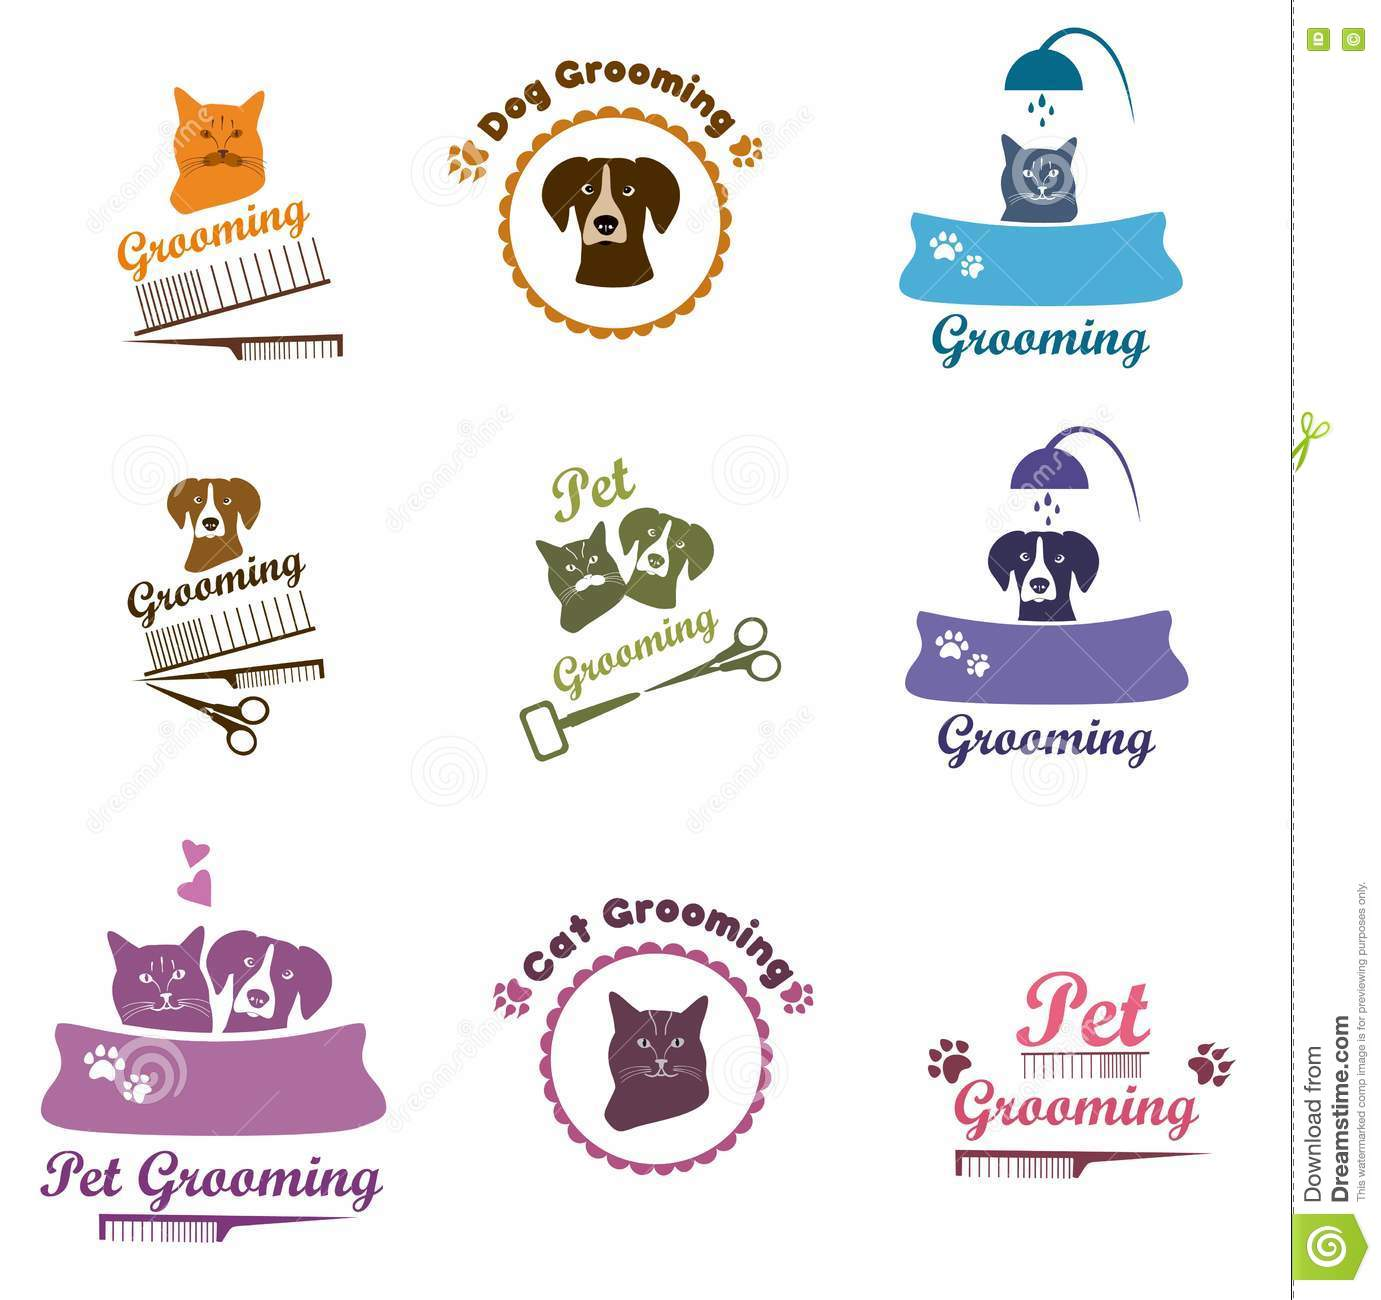 Dog Grooming Sign Ideas